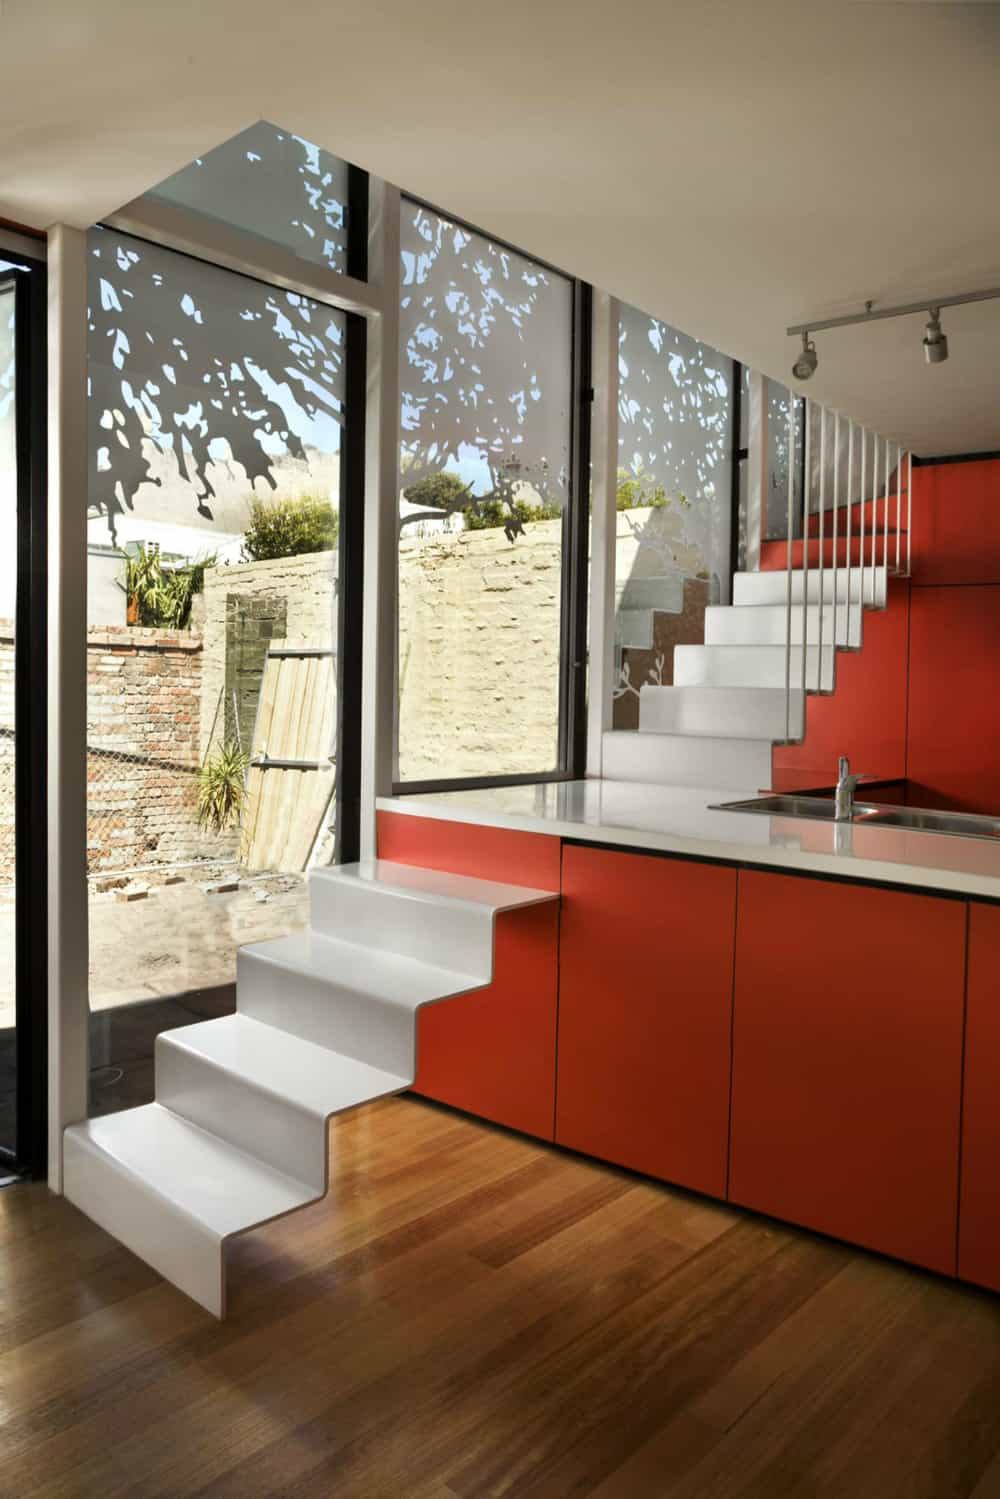 Andrew Maynard Architects put a staircase through the kitchen island